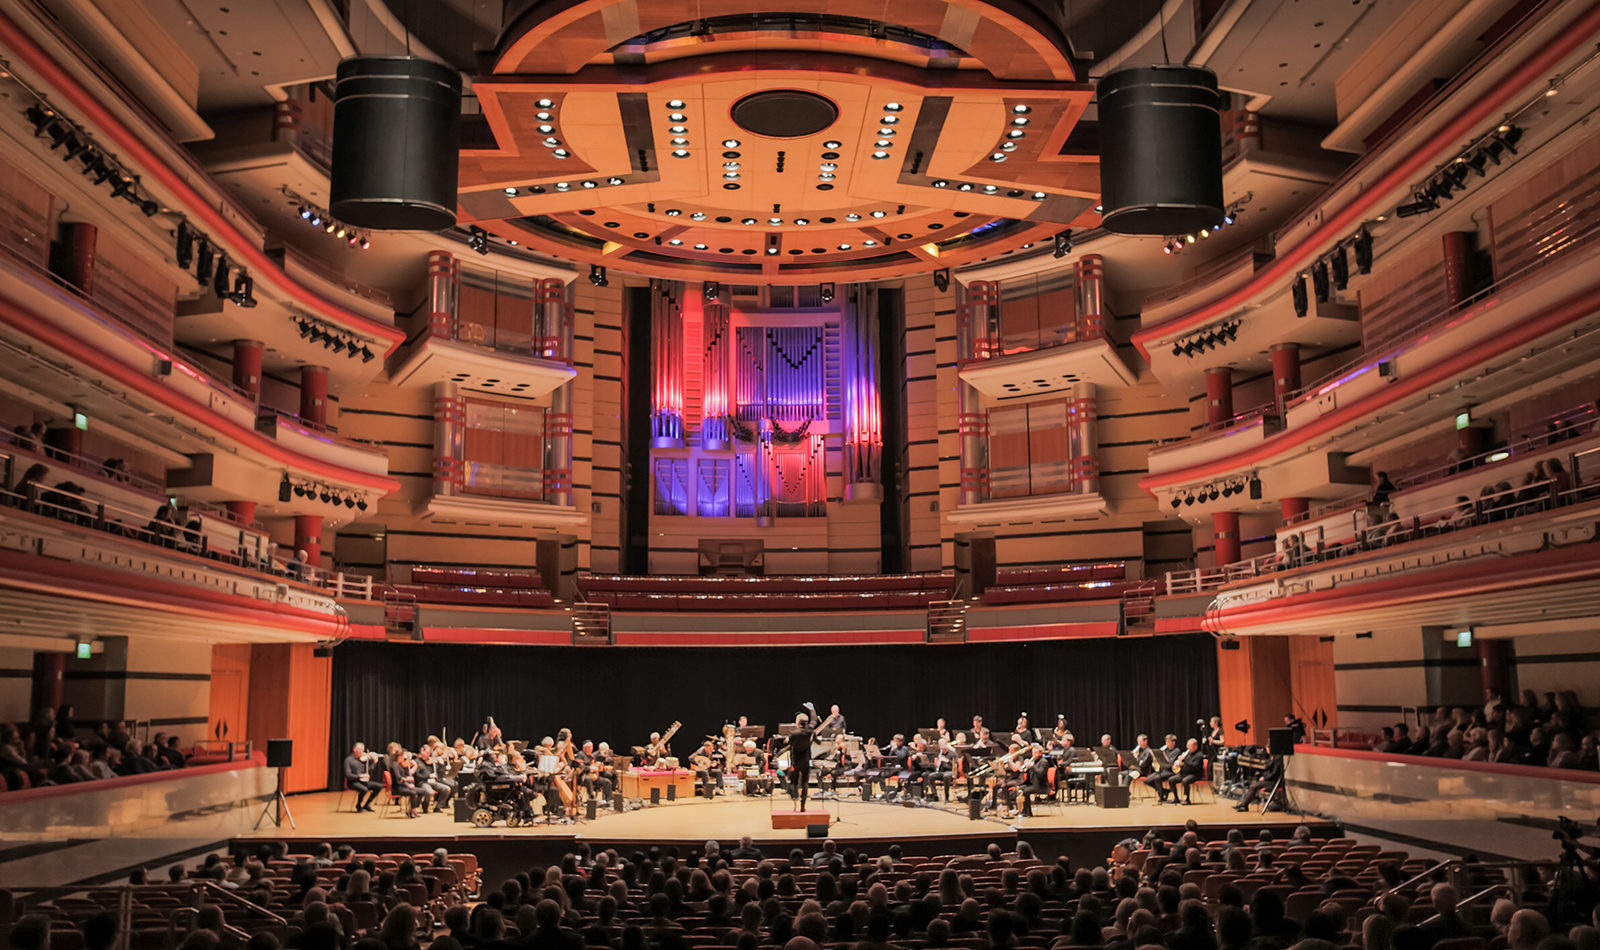 A long wide view taken from the back of the auditorium, of The British Paraorchestra playing on stage at the Birmingham Symphony Hall, audience members' heads can be seen at the forefront.